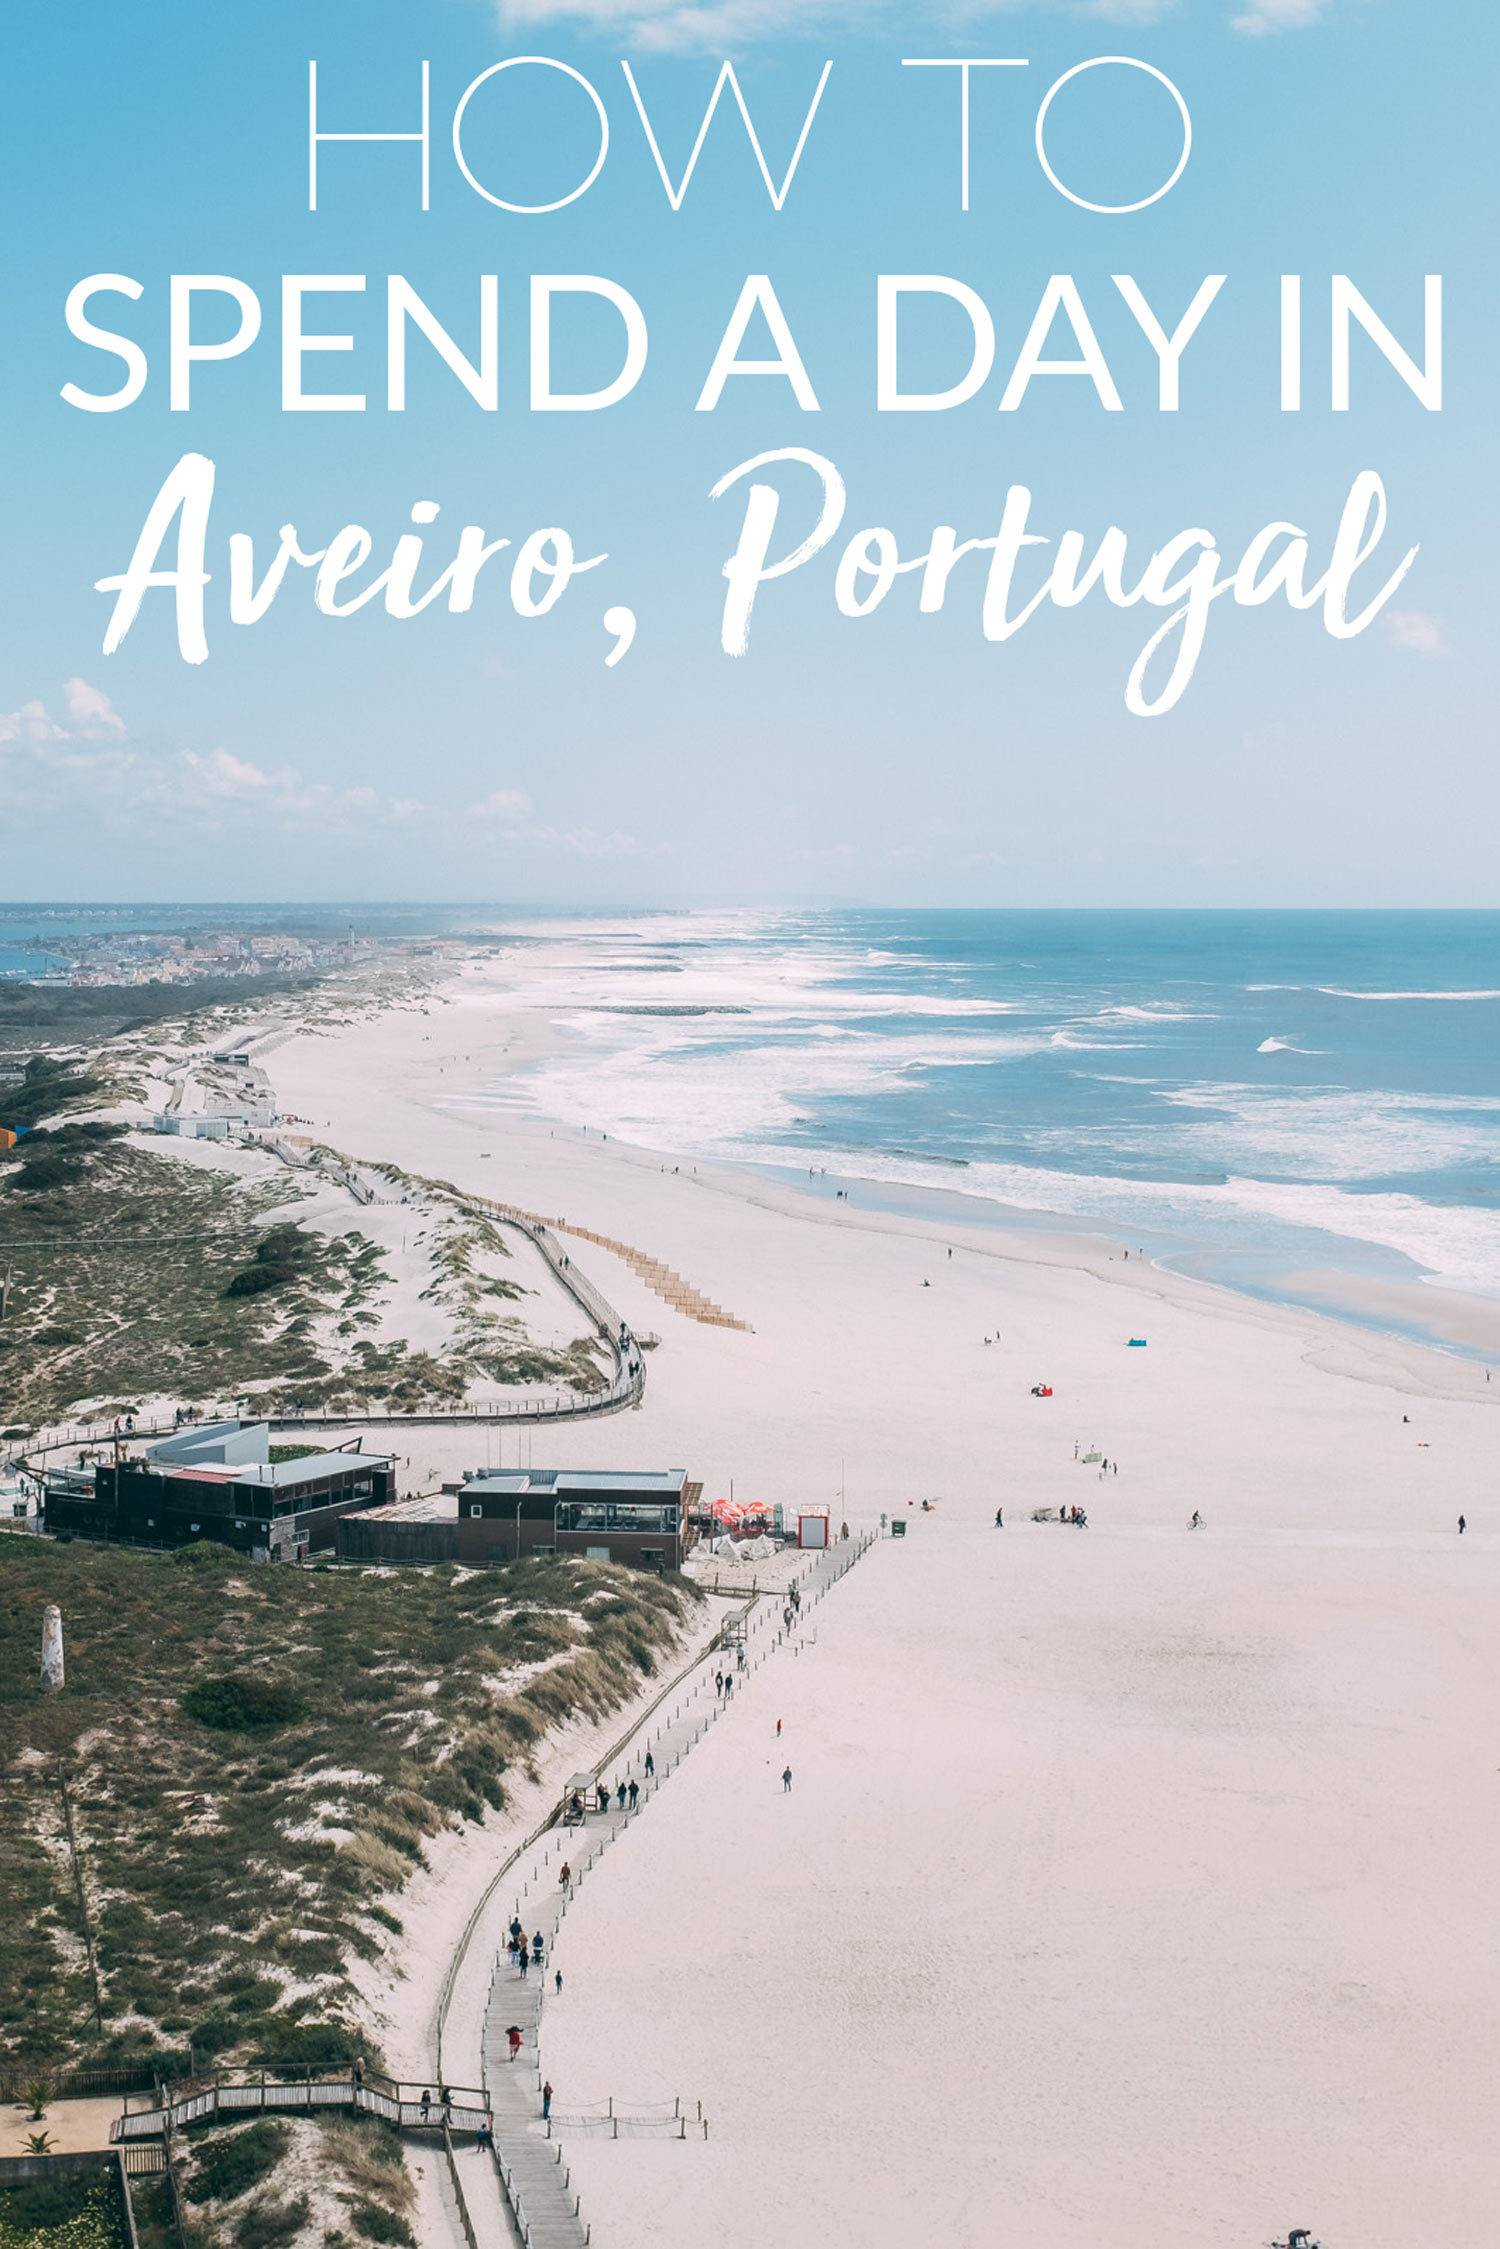 How to Spend a Day in Aveiro Portugal